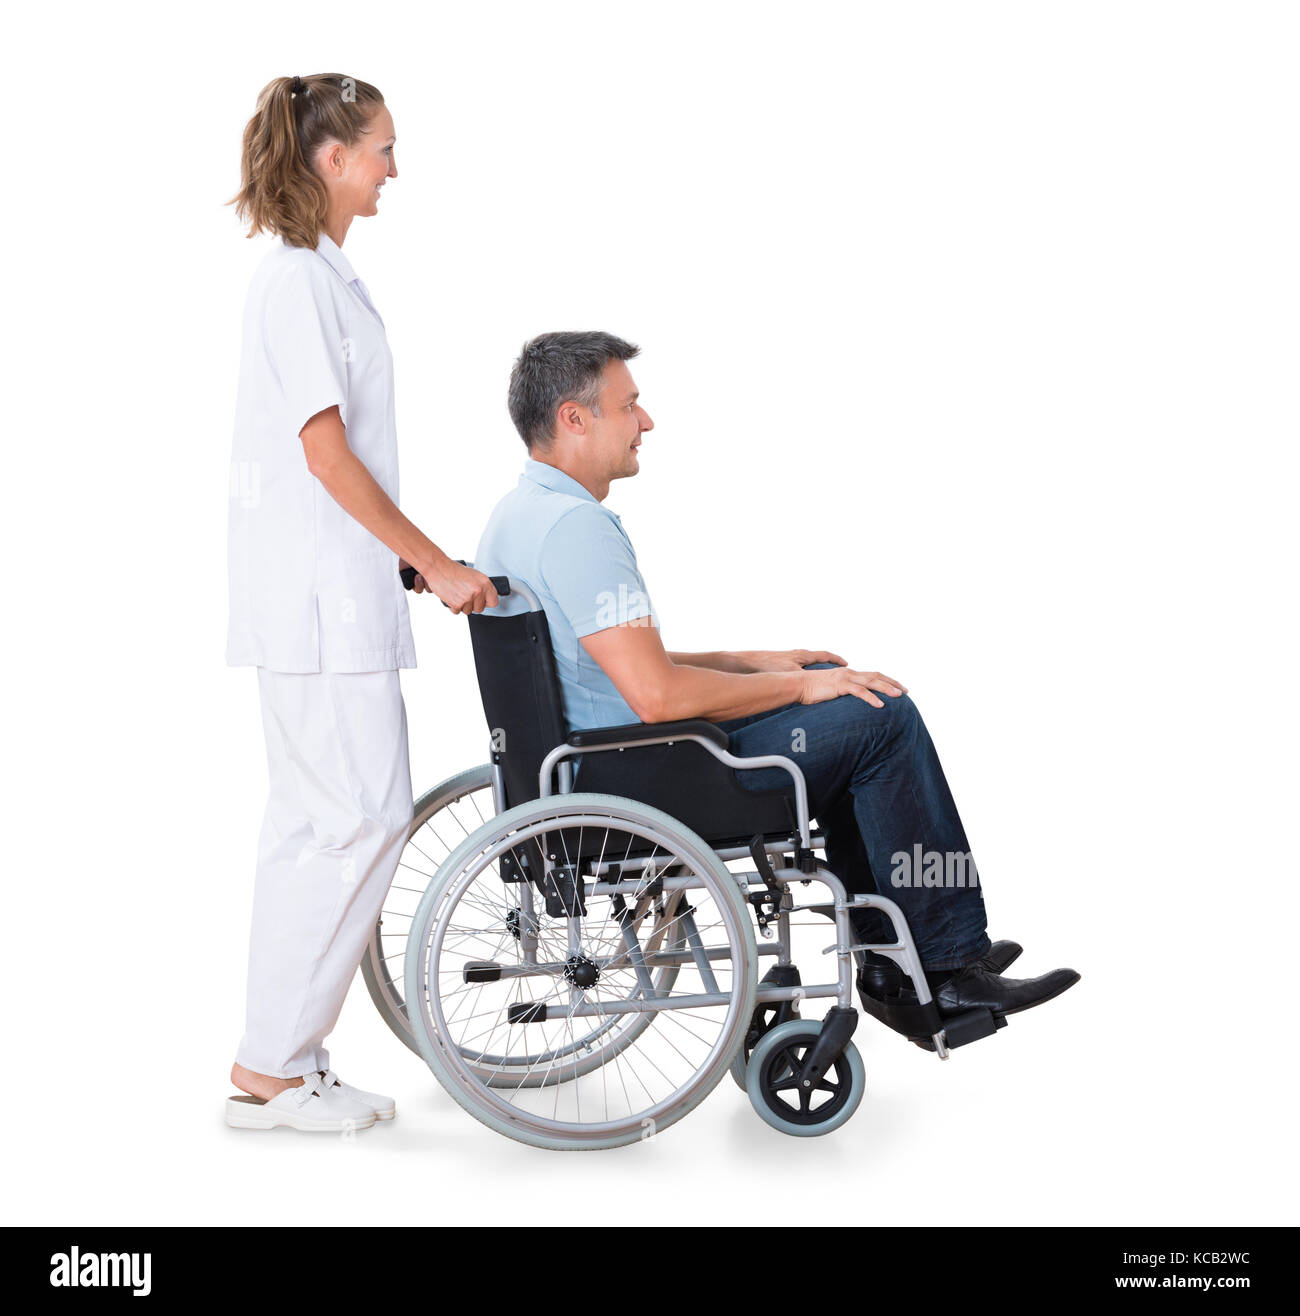 A Female Caretaker Pushing Disabled Male Patient On Wheelchair Against White Background - Stock Image